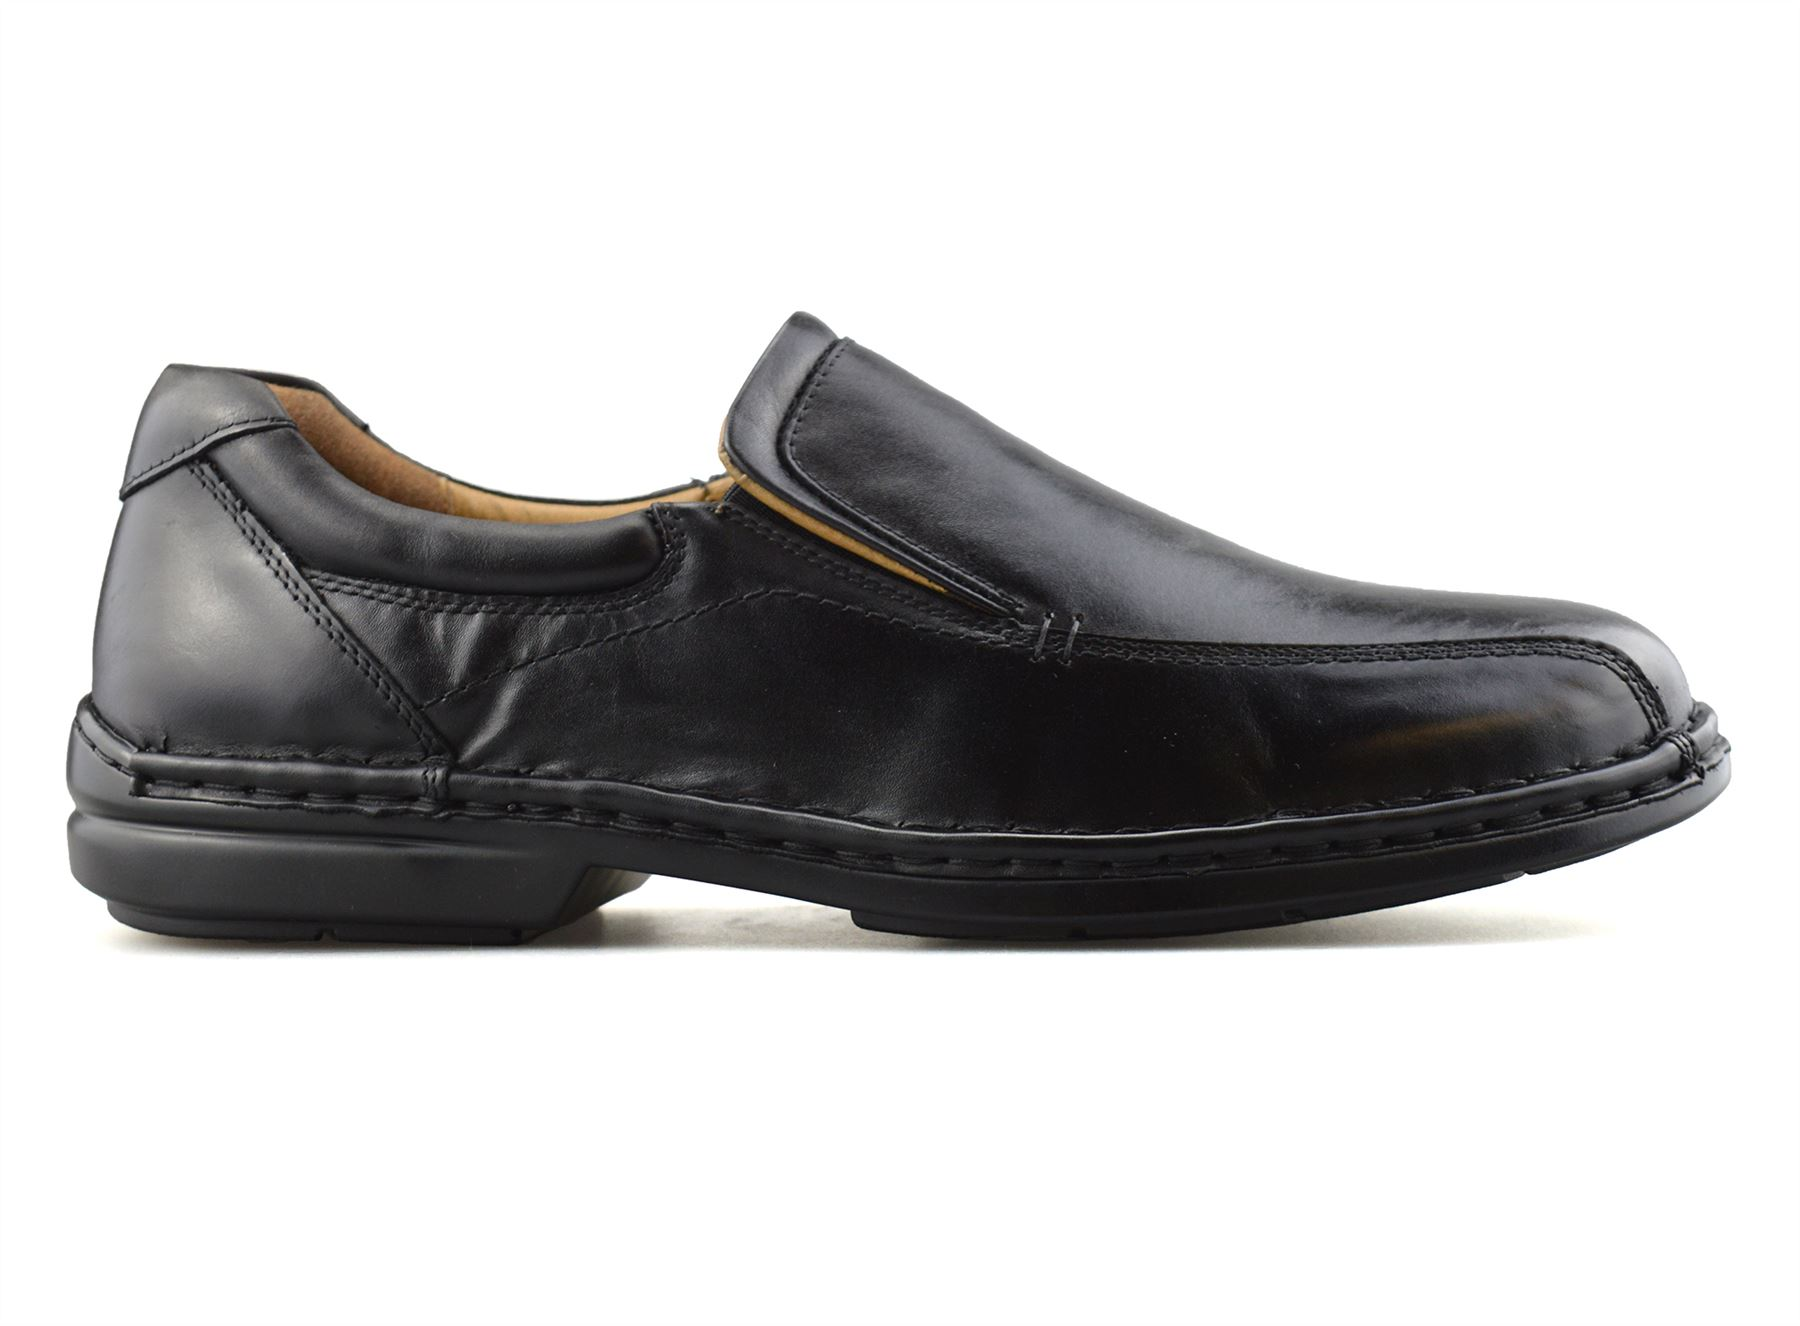 Mens-Hush-Puppies-Leather-Wide-Fit-Smart-Casual-Lace-Up-Work-Office-Shoes-Size thumbnail 16